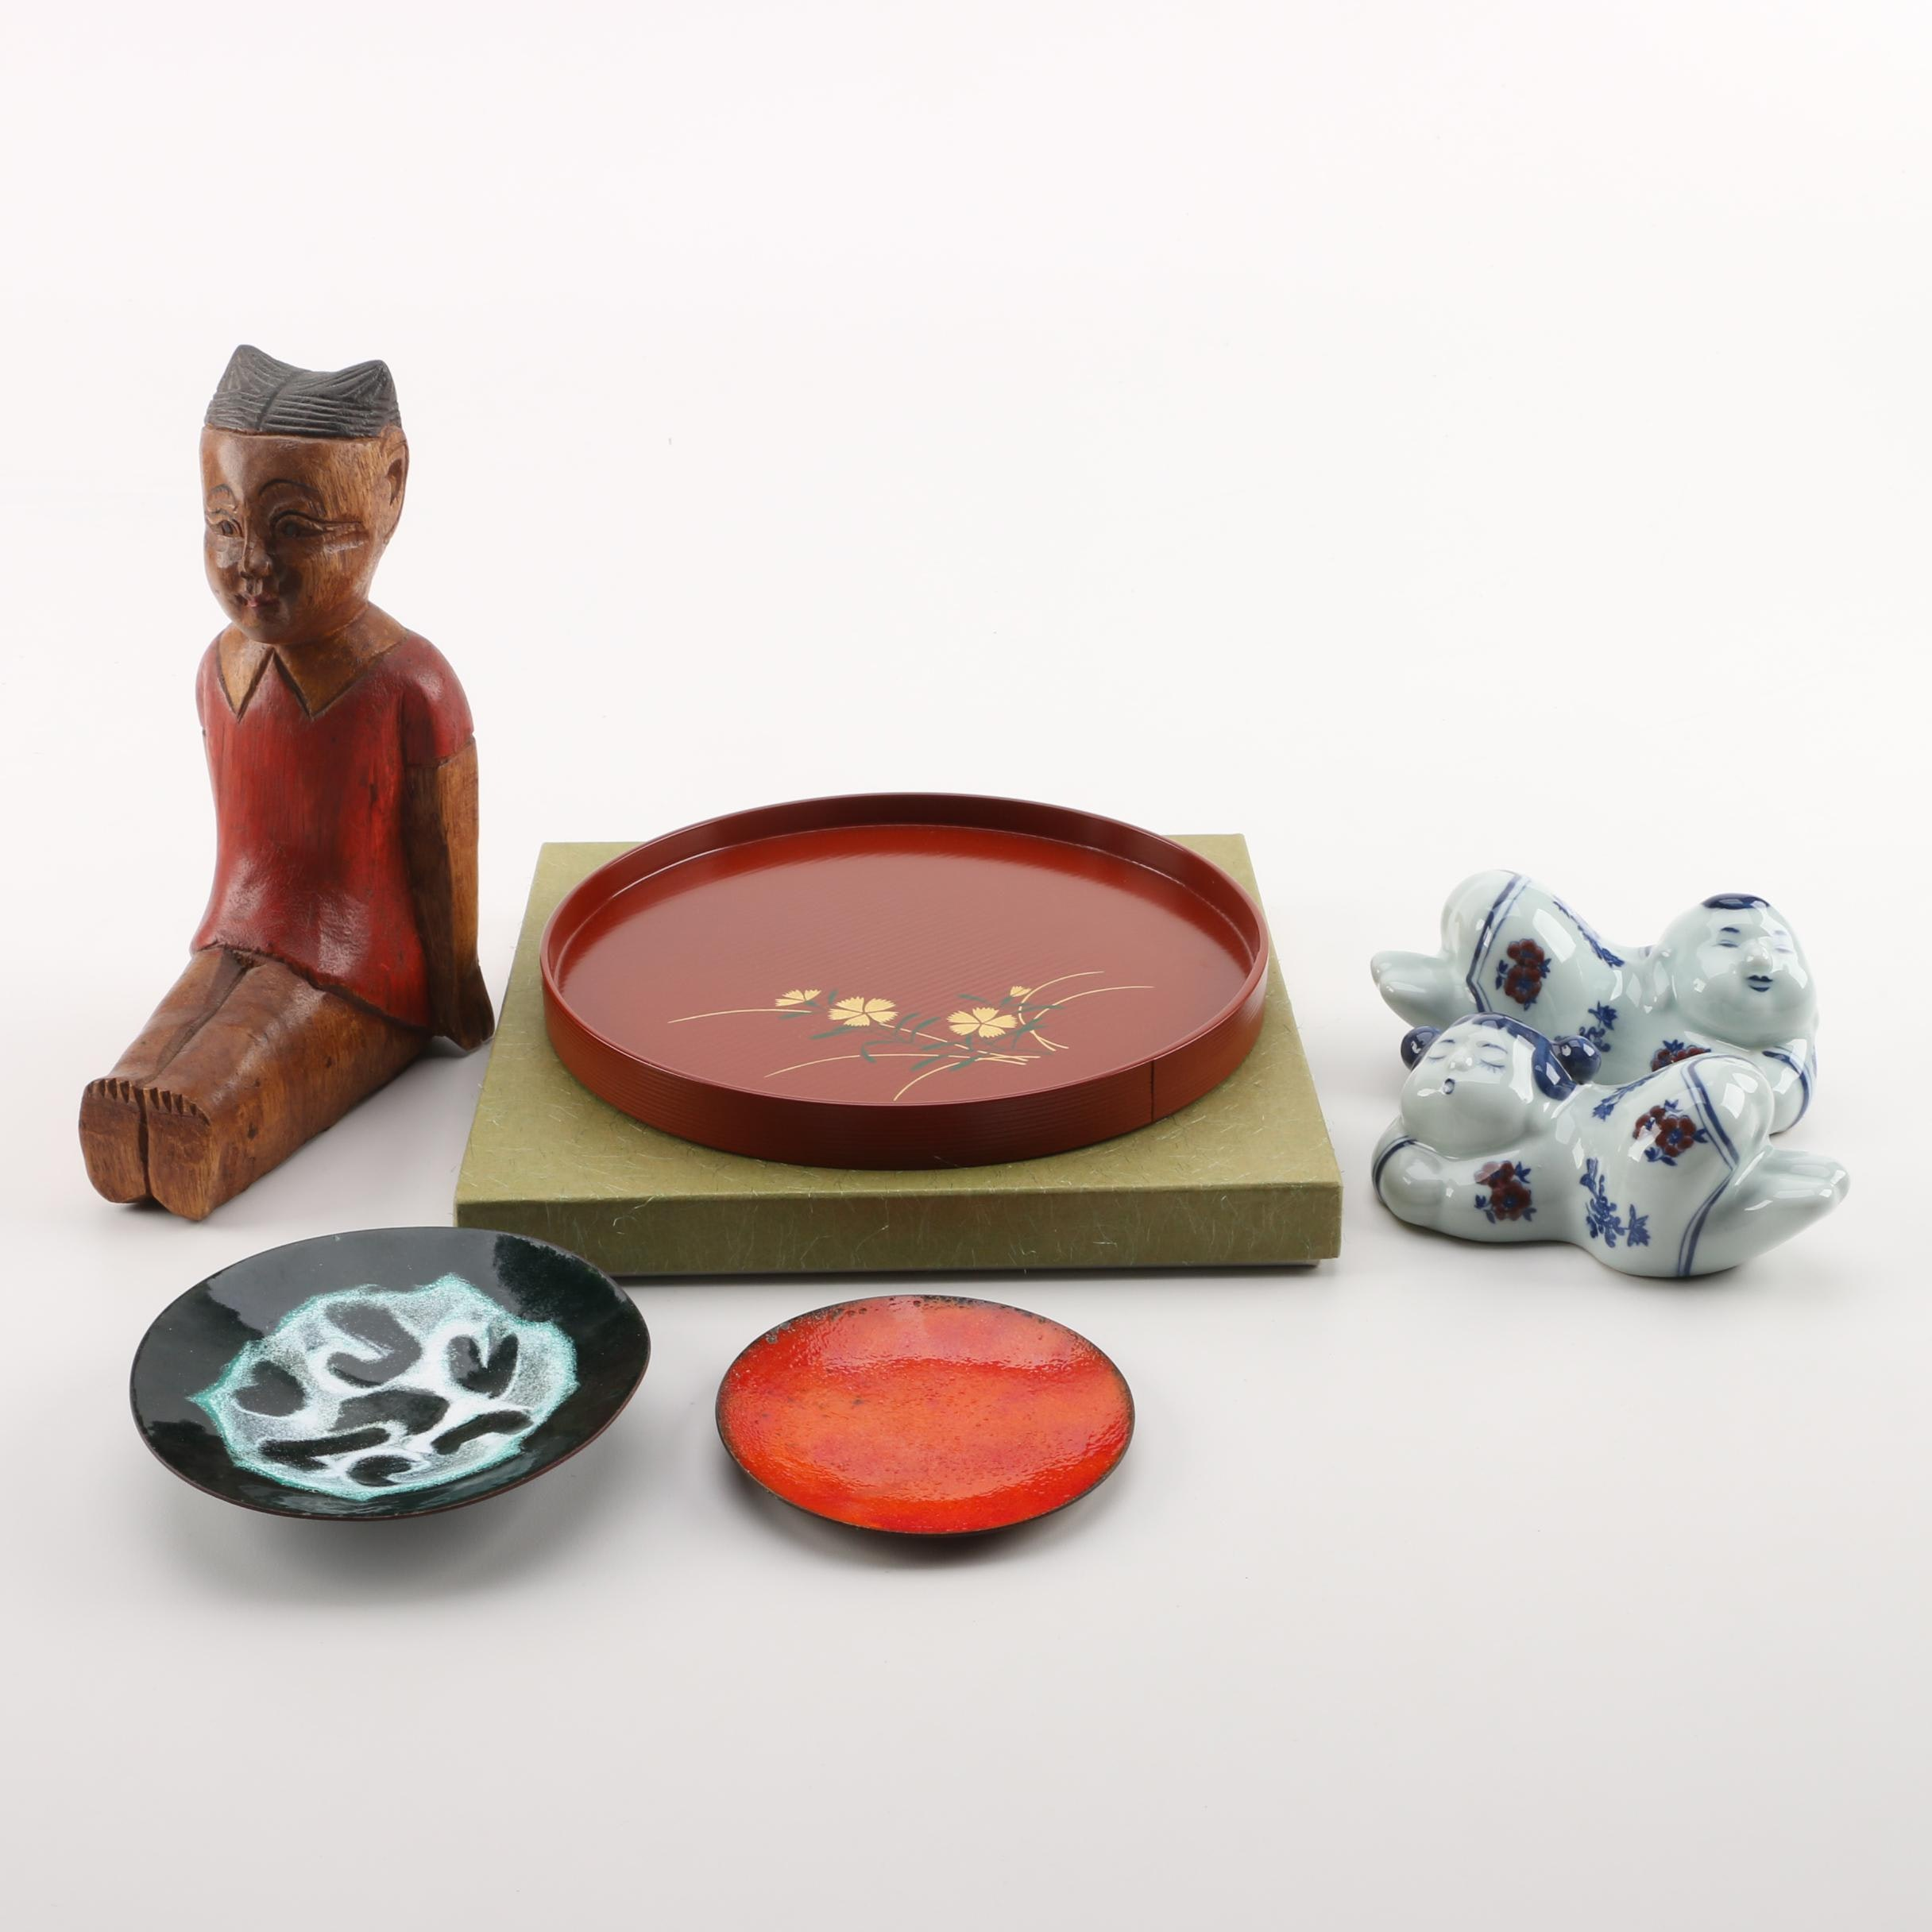 East Asian Figurines and Plates